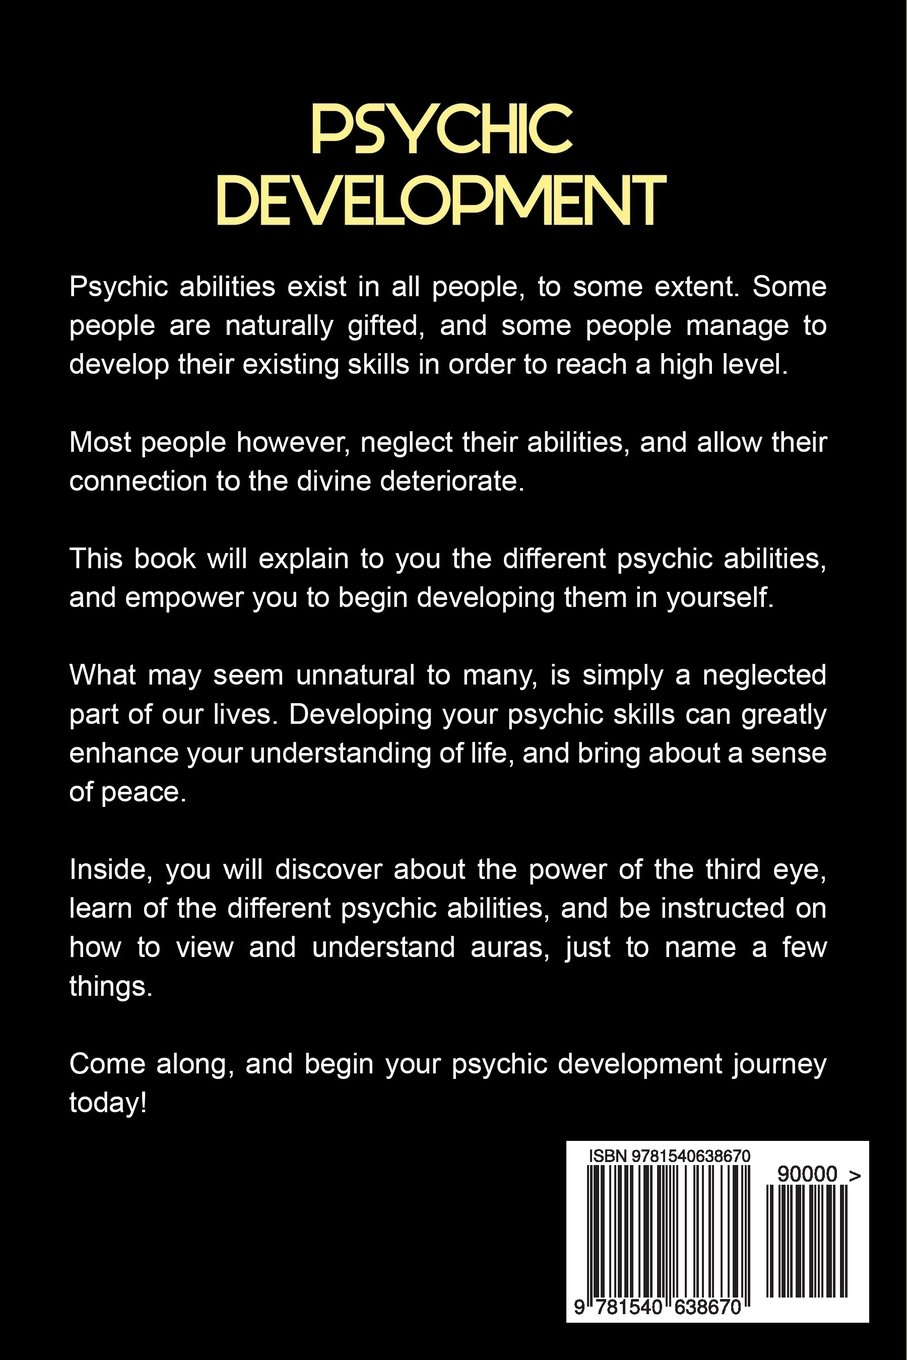 What are some facts about psychic abilities?